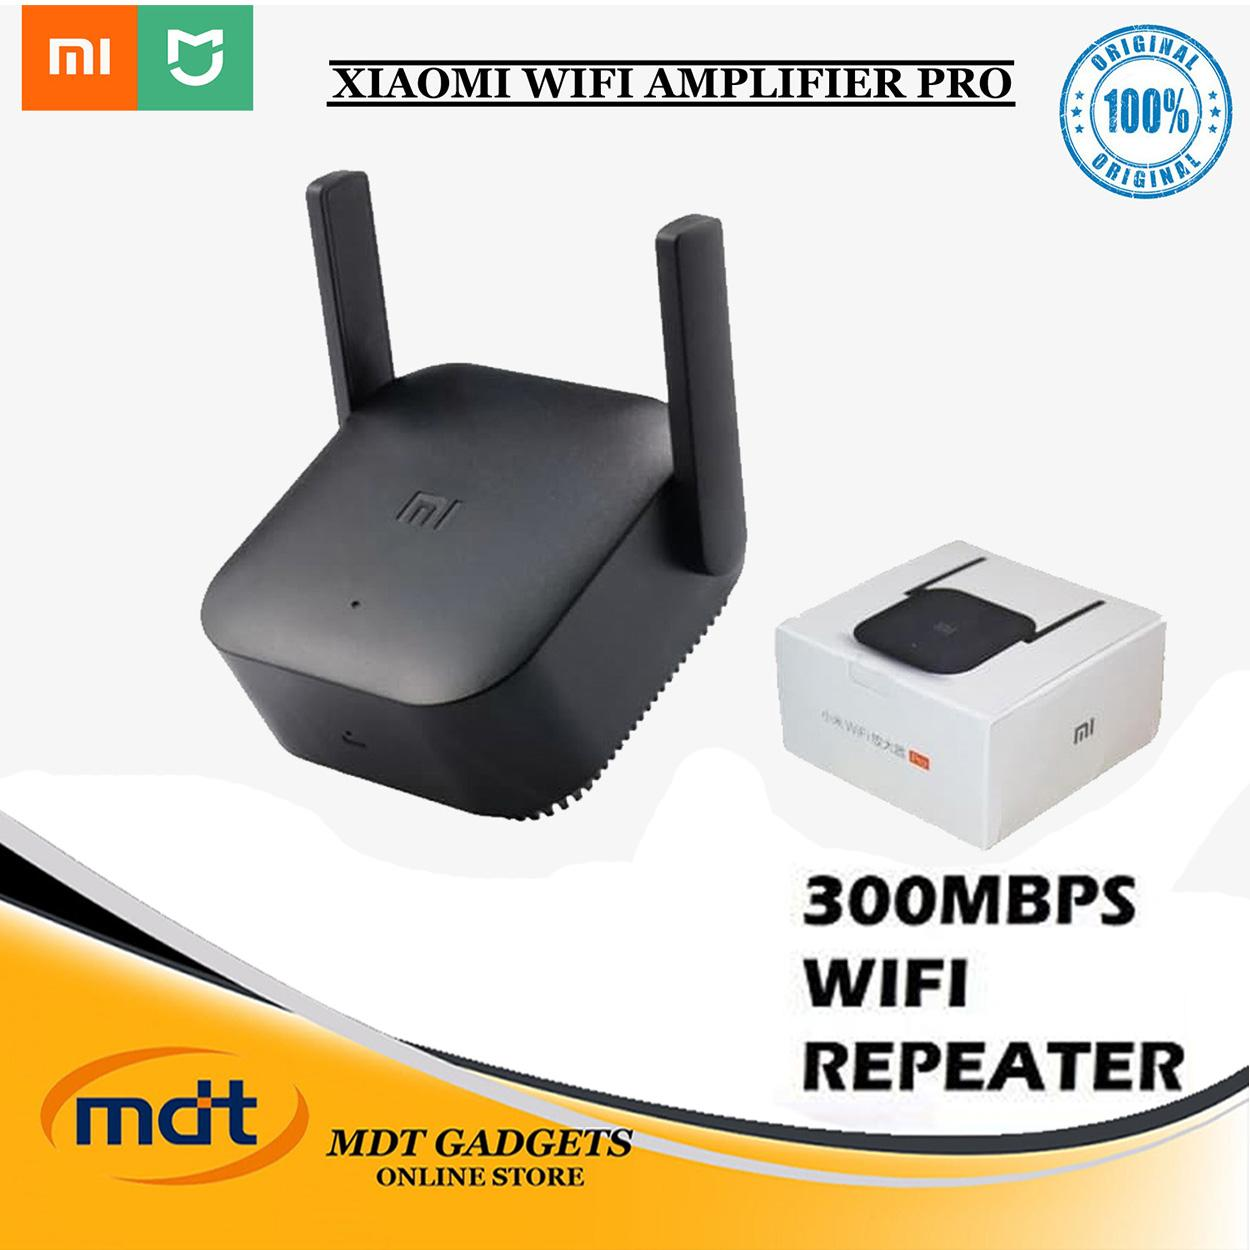 Xiaomi Routers Philippines Internet For Sale Wifi Extender Amplifier Version 2 Authentic Pro 300m 24g With Antenna Mi Router Wireless Repeater Network